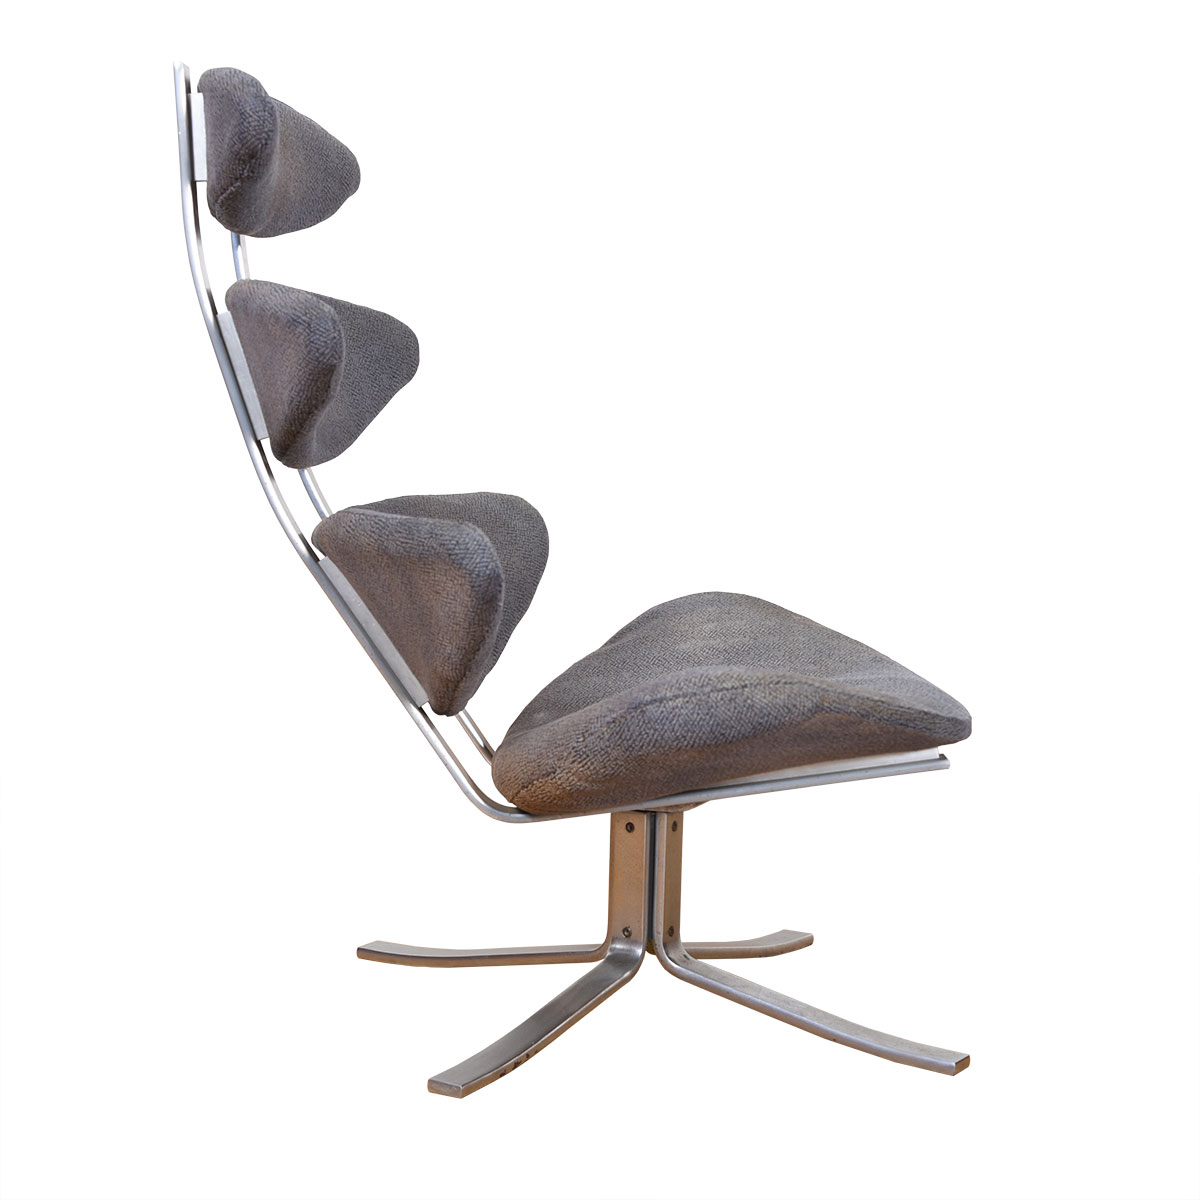 The Corona Chair by Poul Volther for Erik Jorgensen